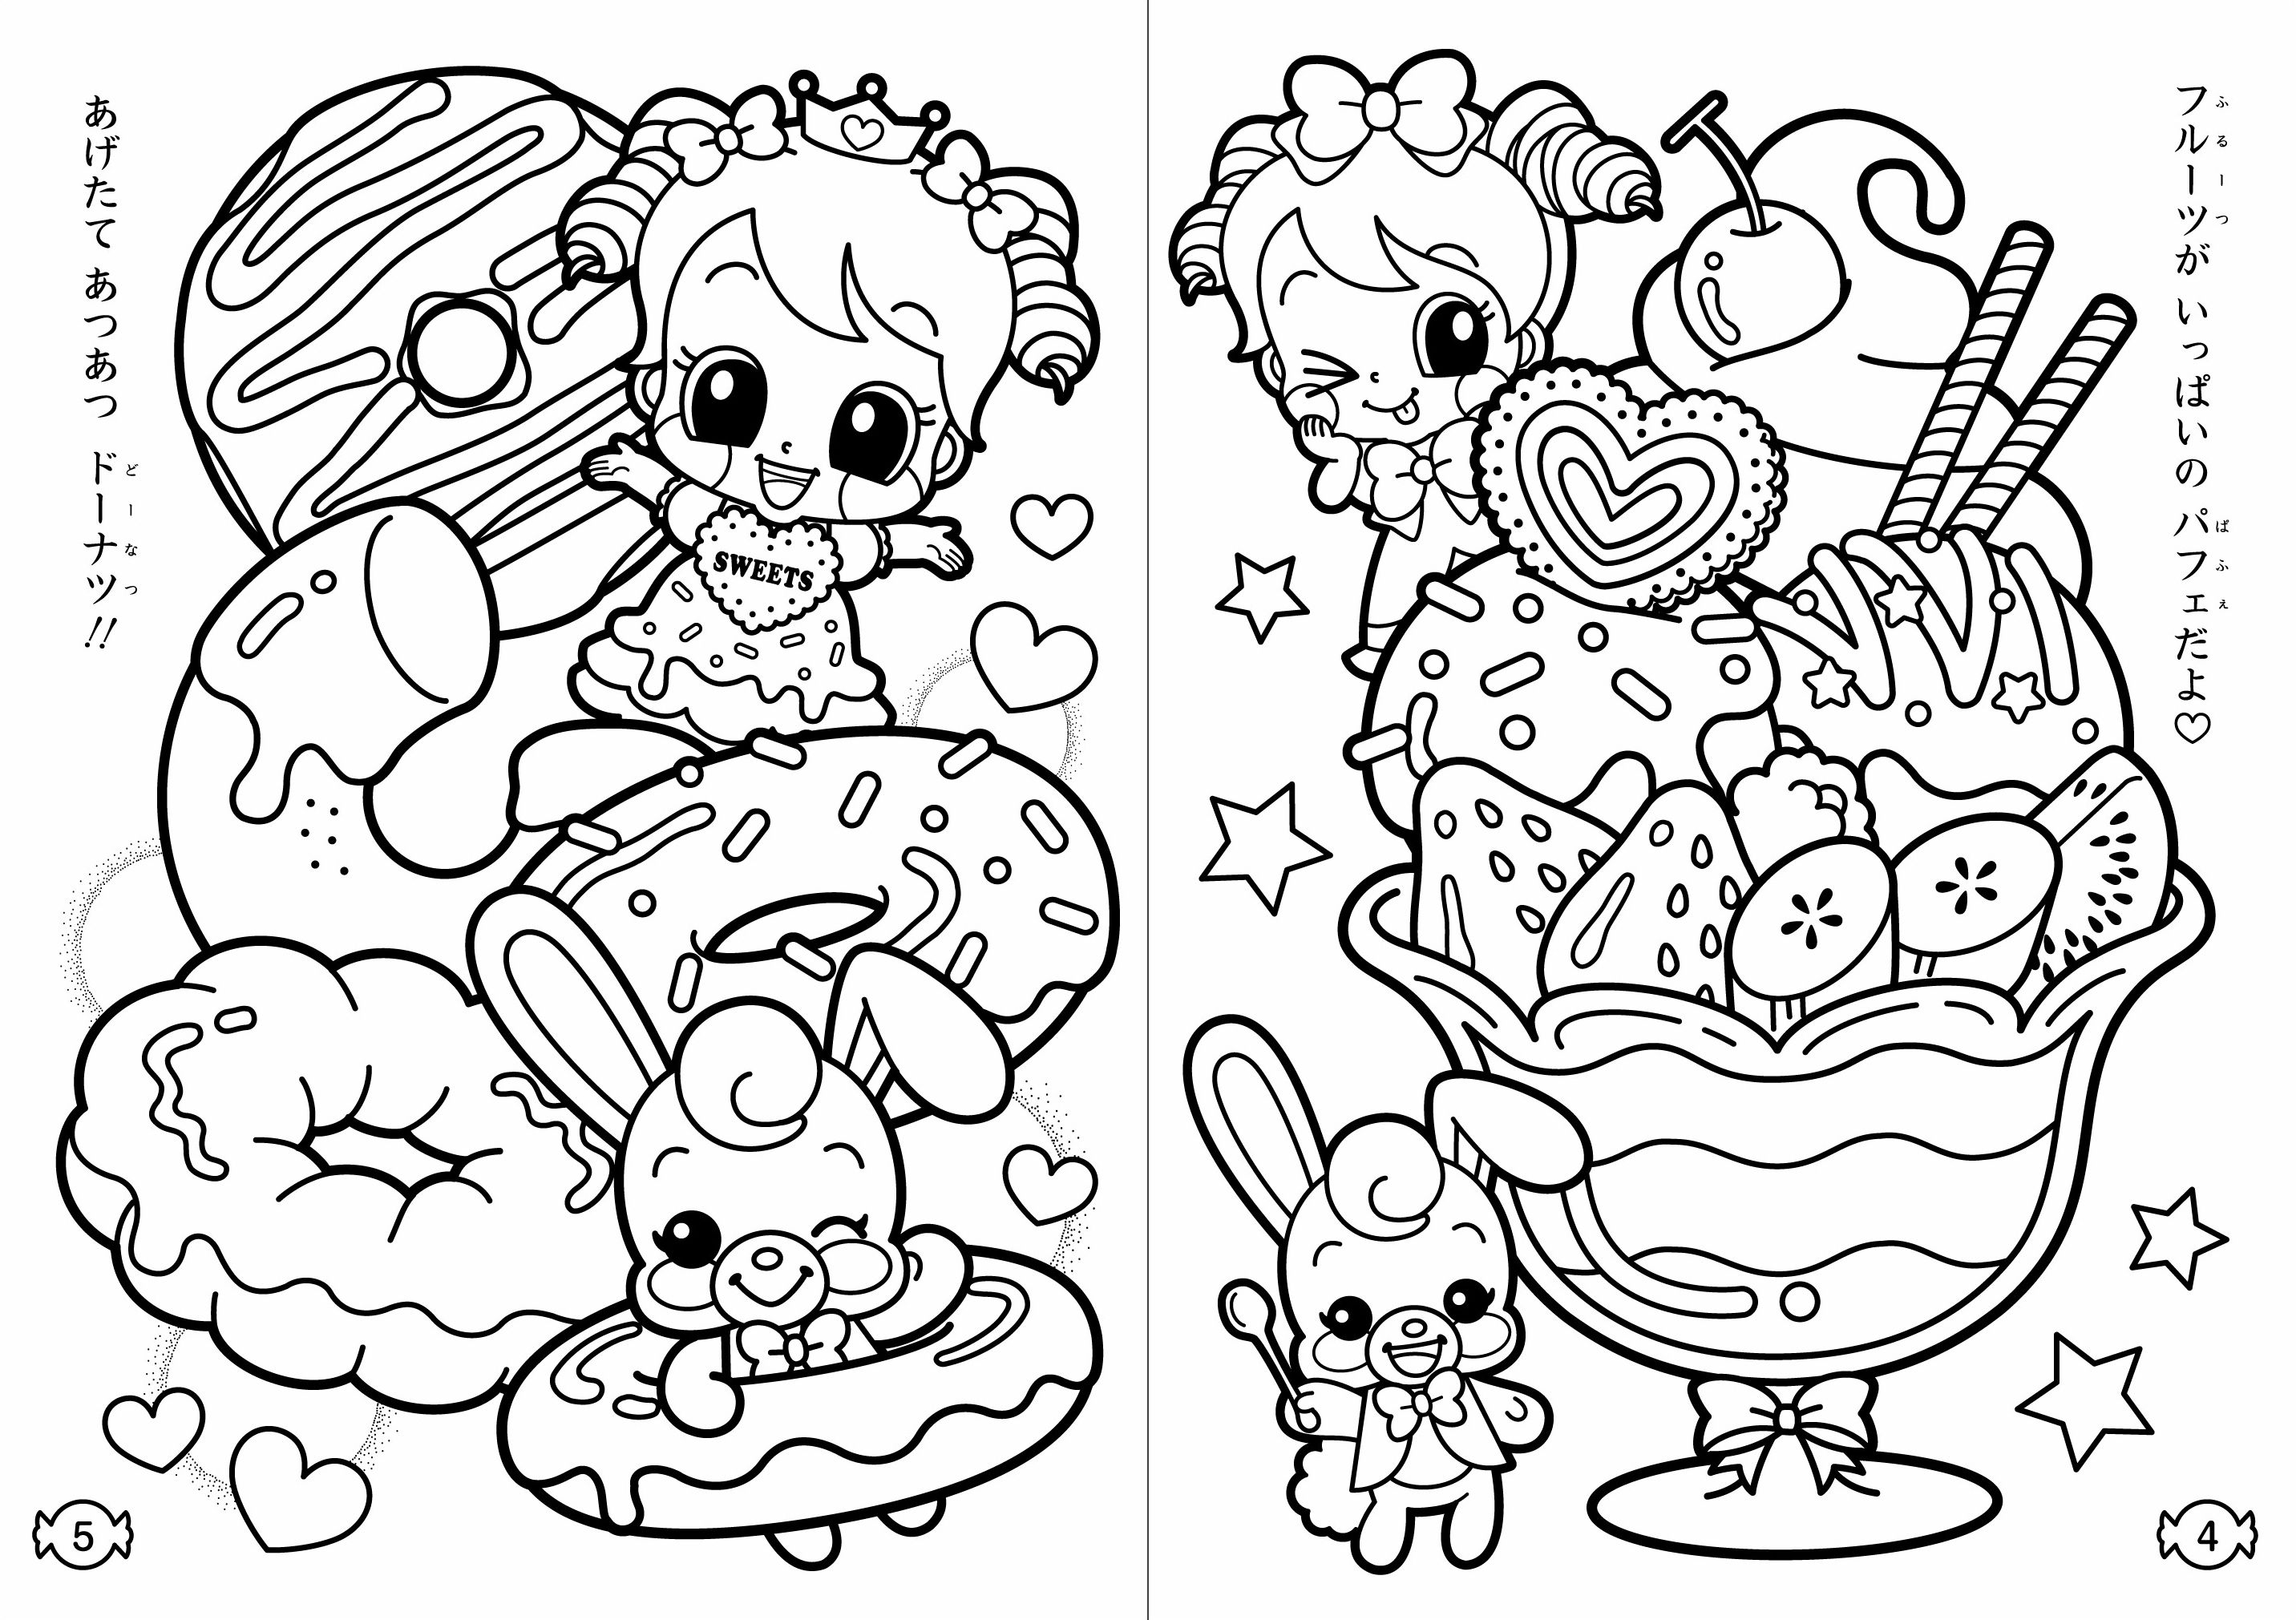 coloring cute food pictures cute food coloring pages kawaii foods free printable food coloring cute pictures